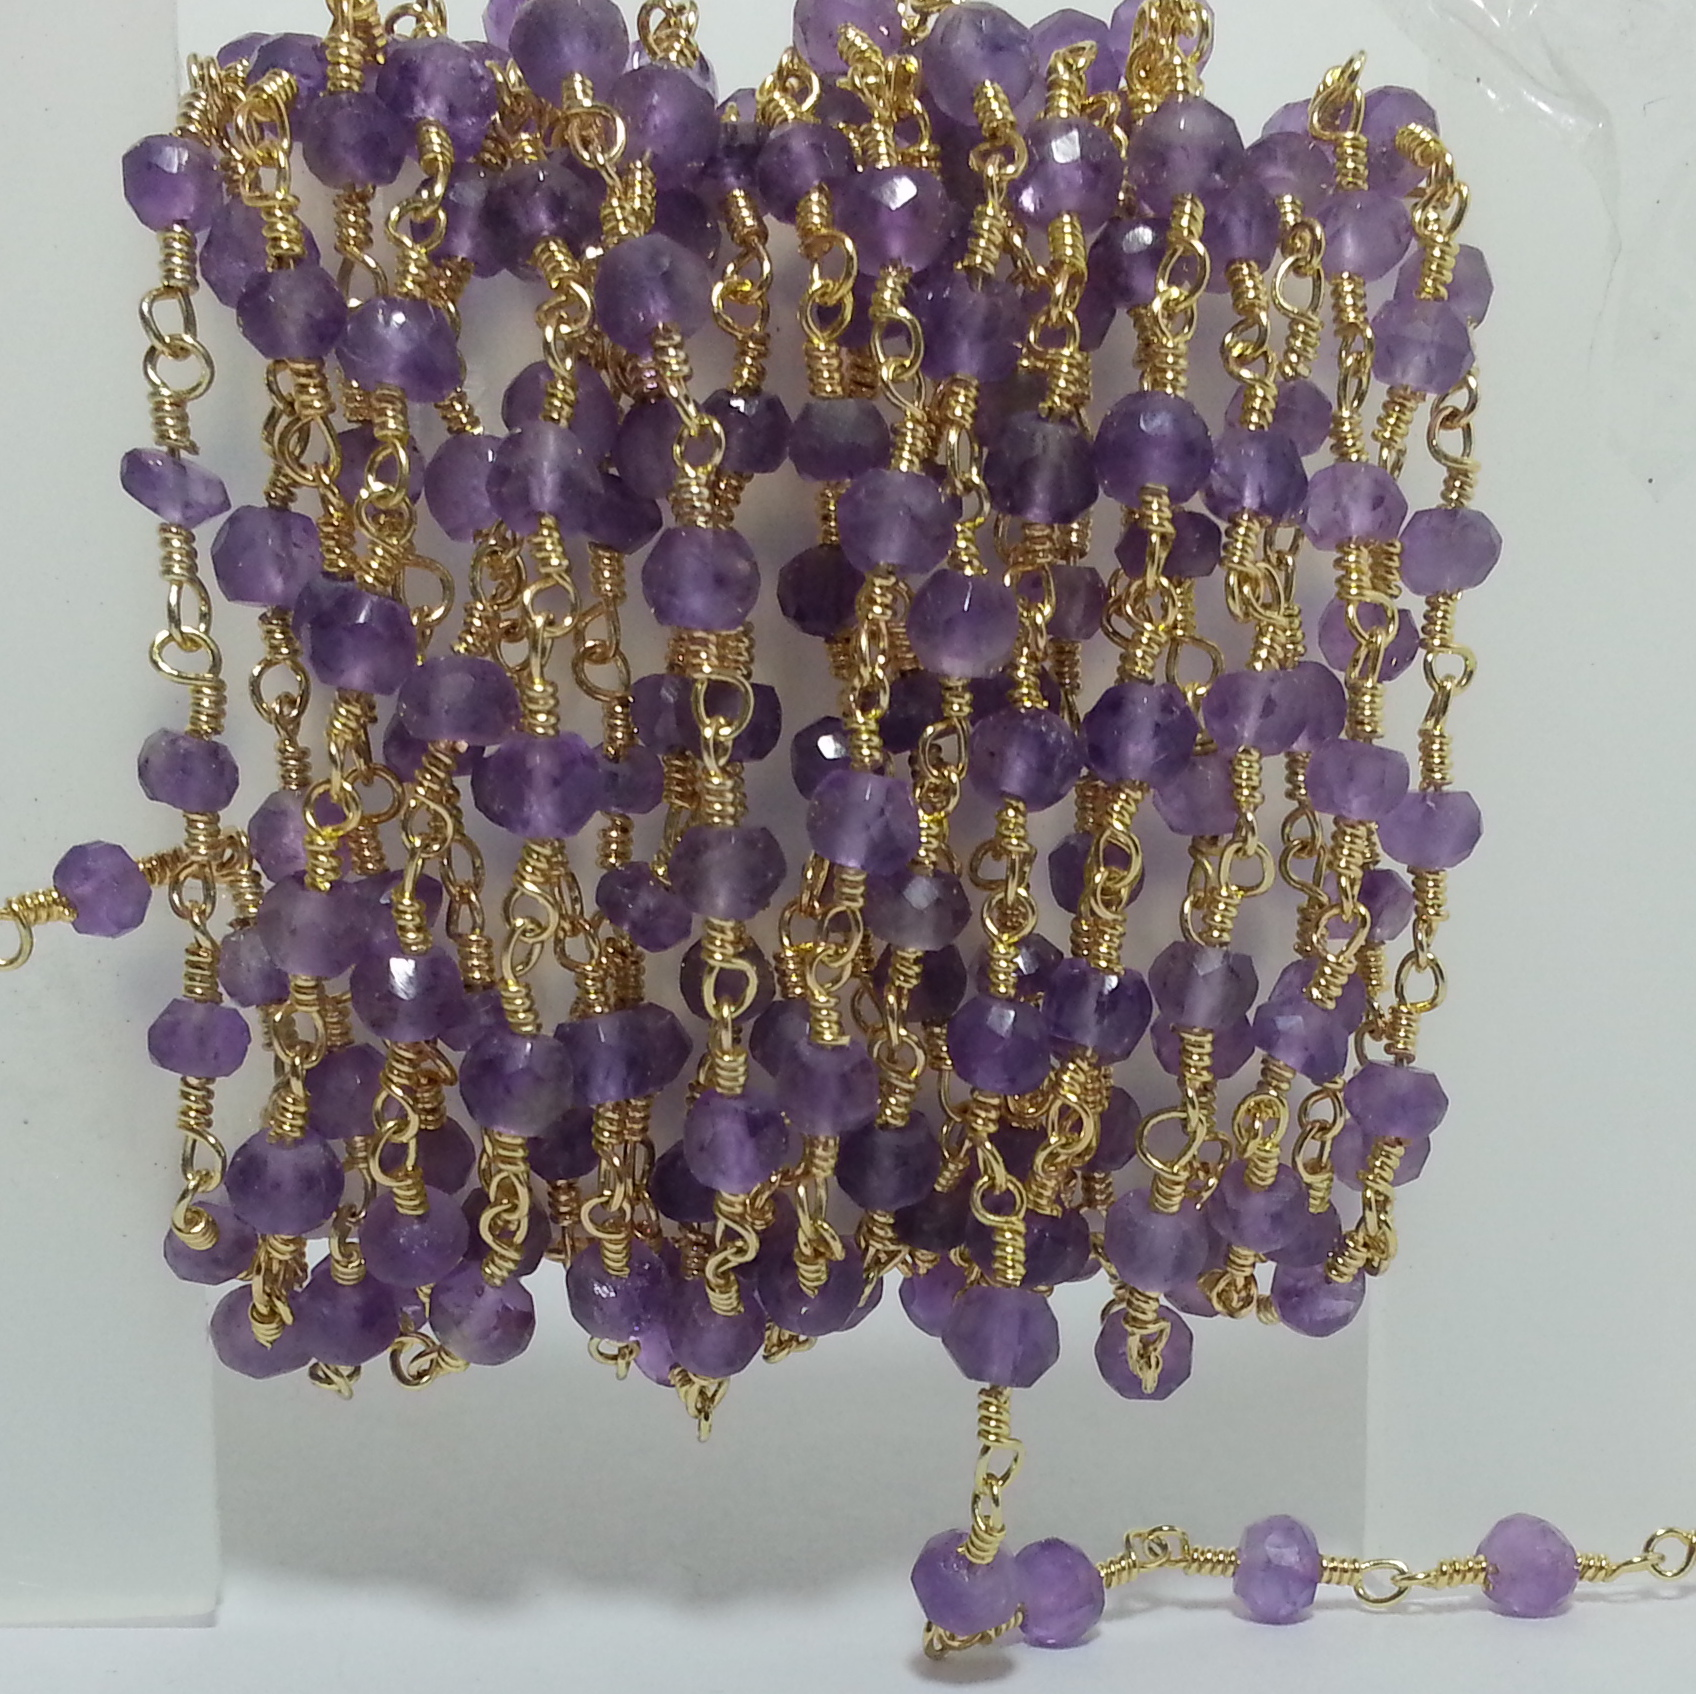 Shop Amethyst Beads Gold Plated Rosary Chain   Get FREE SHIPPING